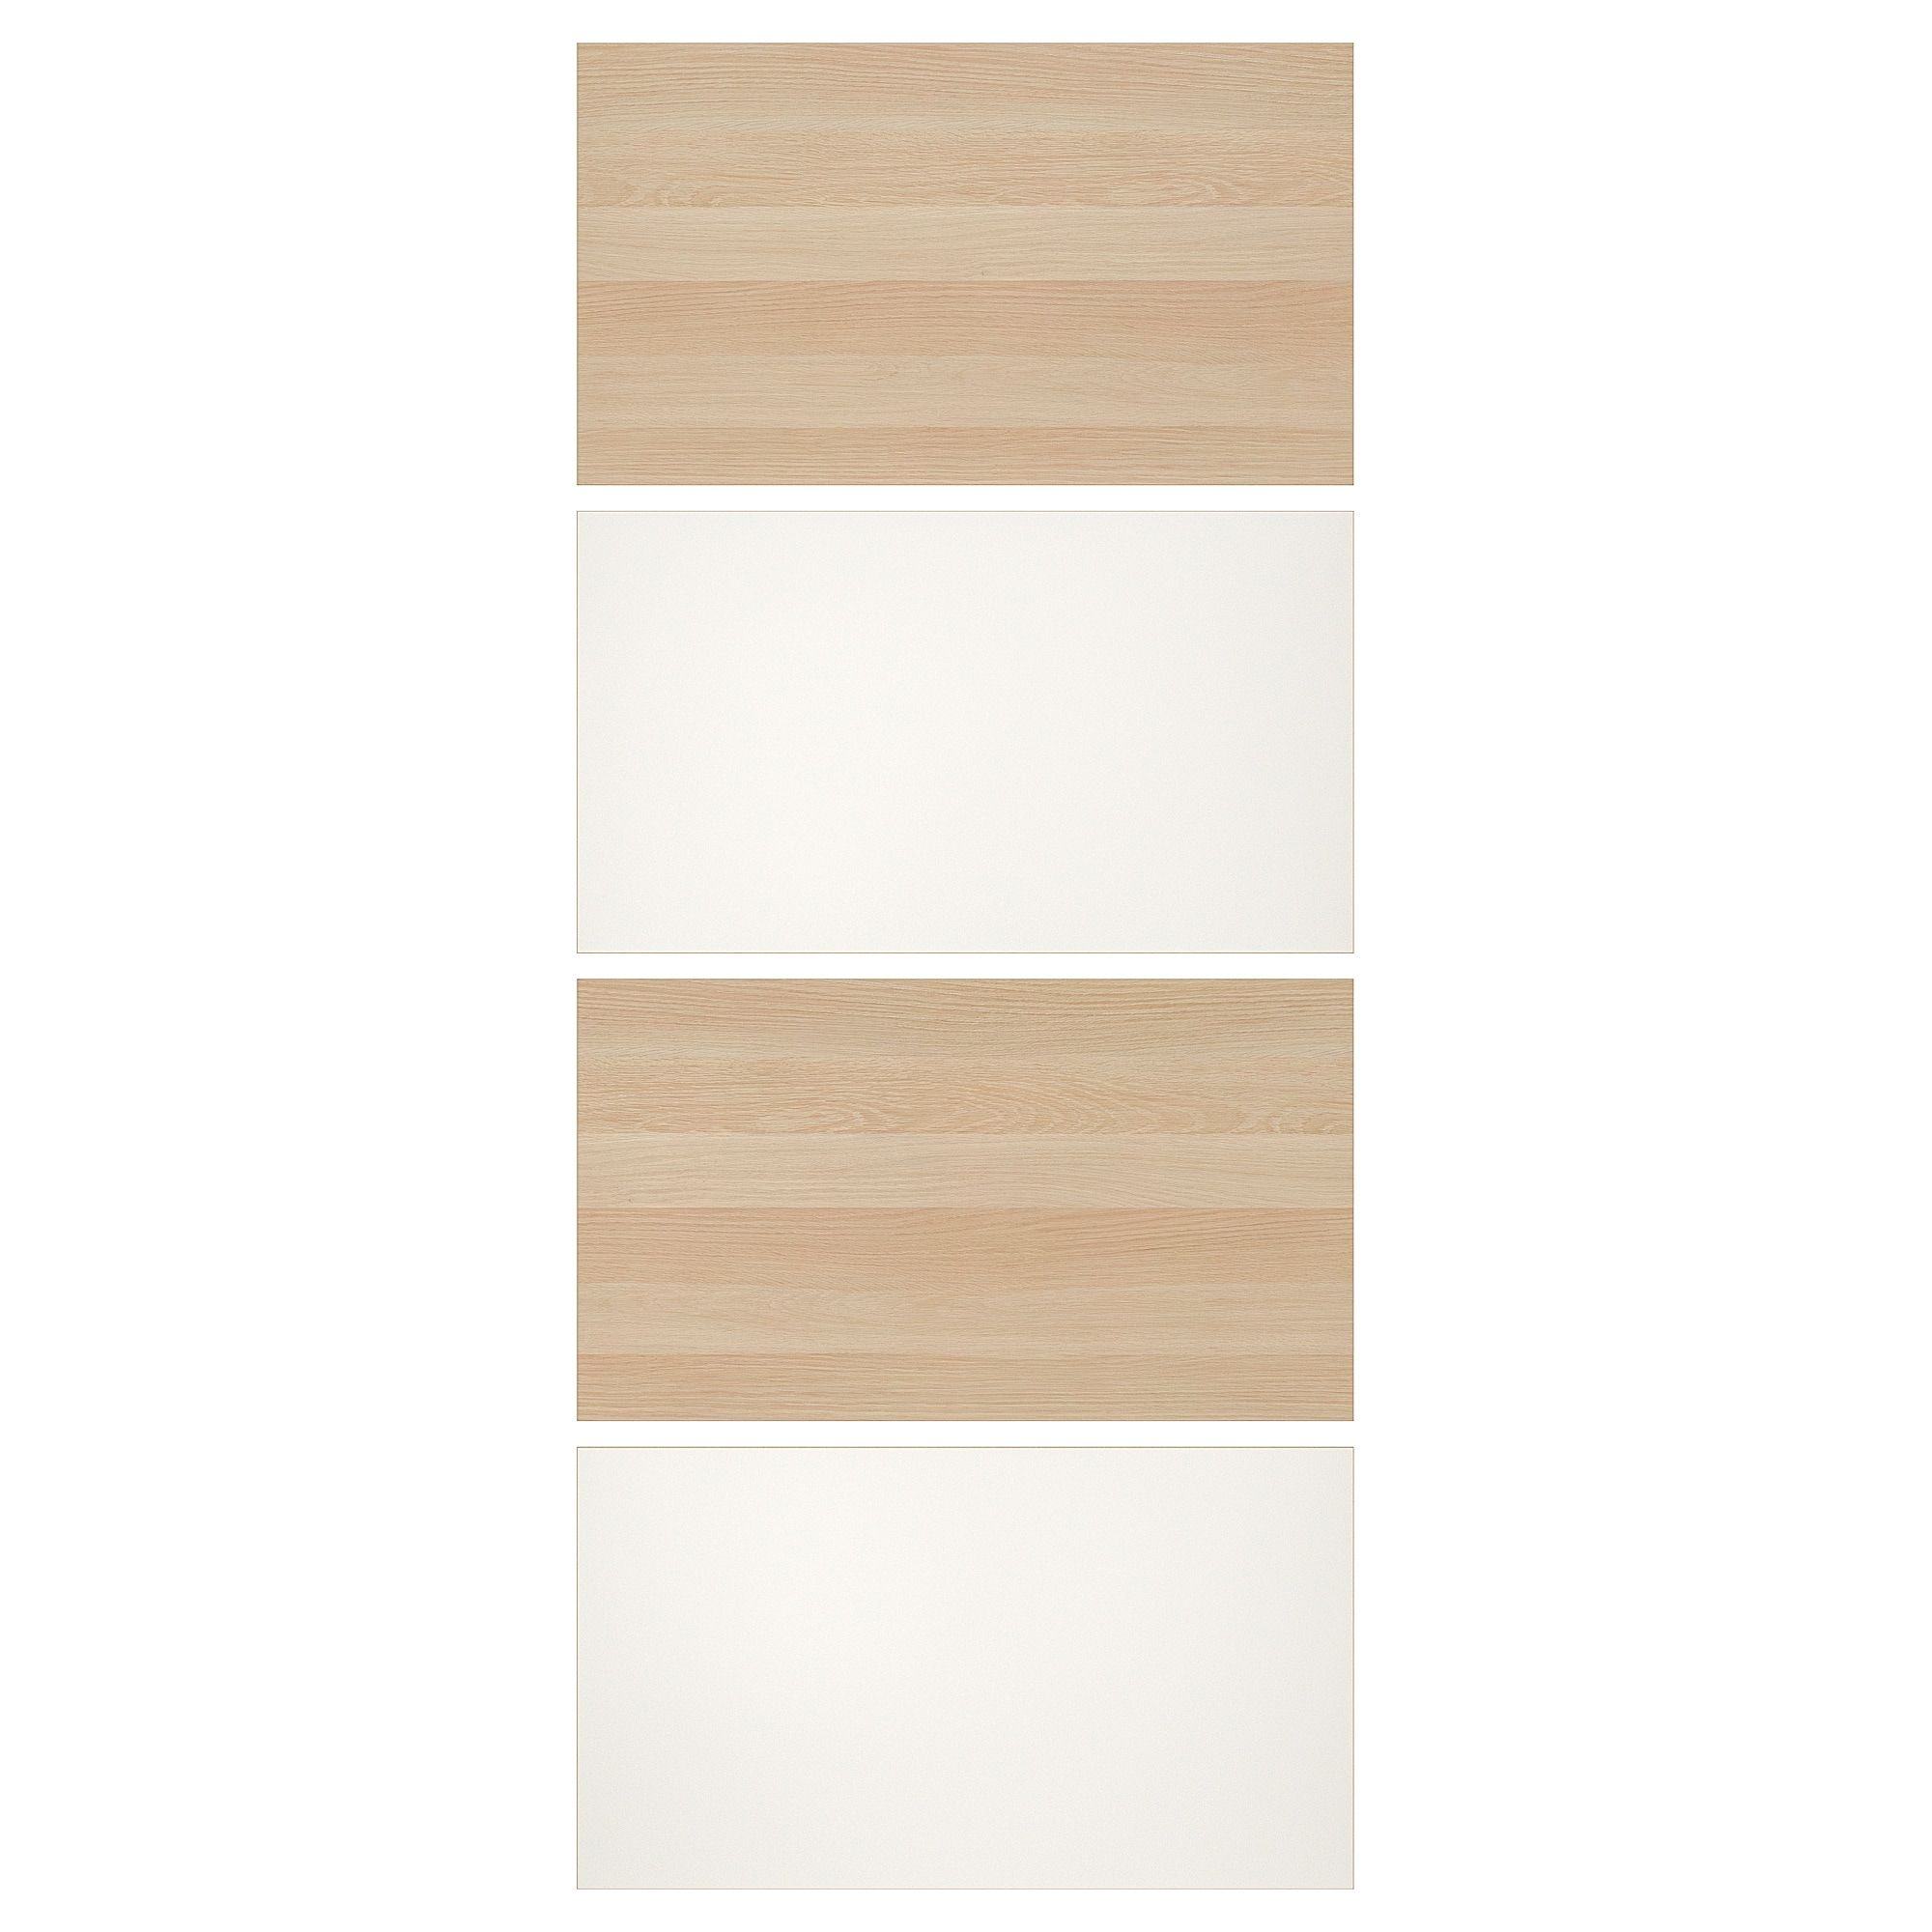 Ikea Mehamn White Stained Oak Effect White 4 Panels For Sliding Door Frame Sliding Doors Wardrobe Systems White Stain